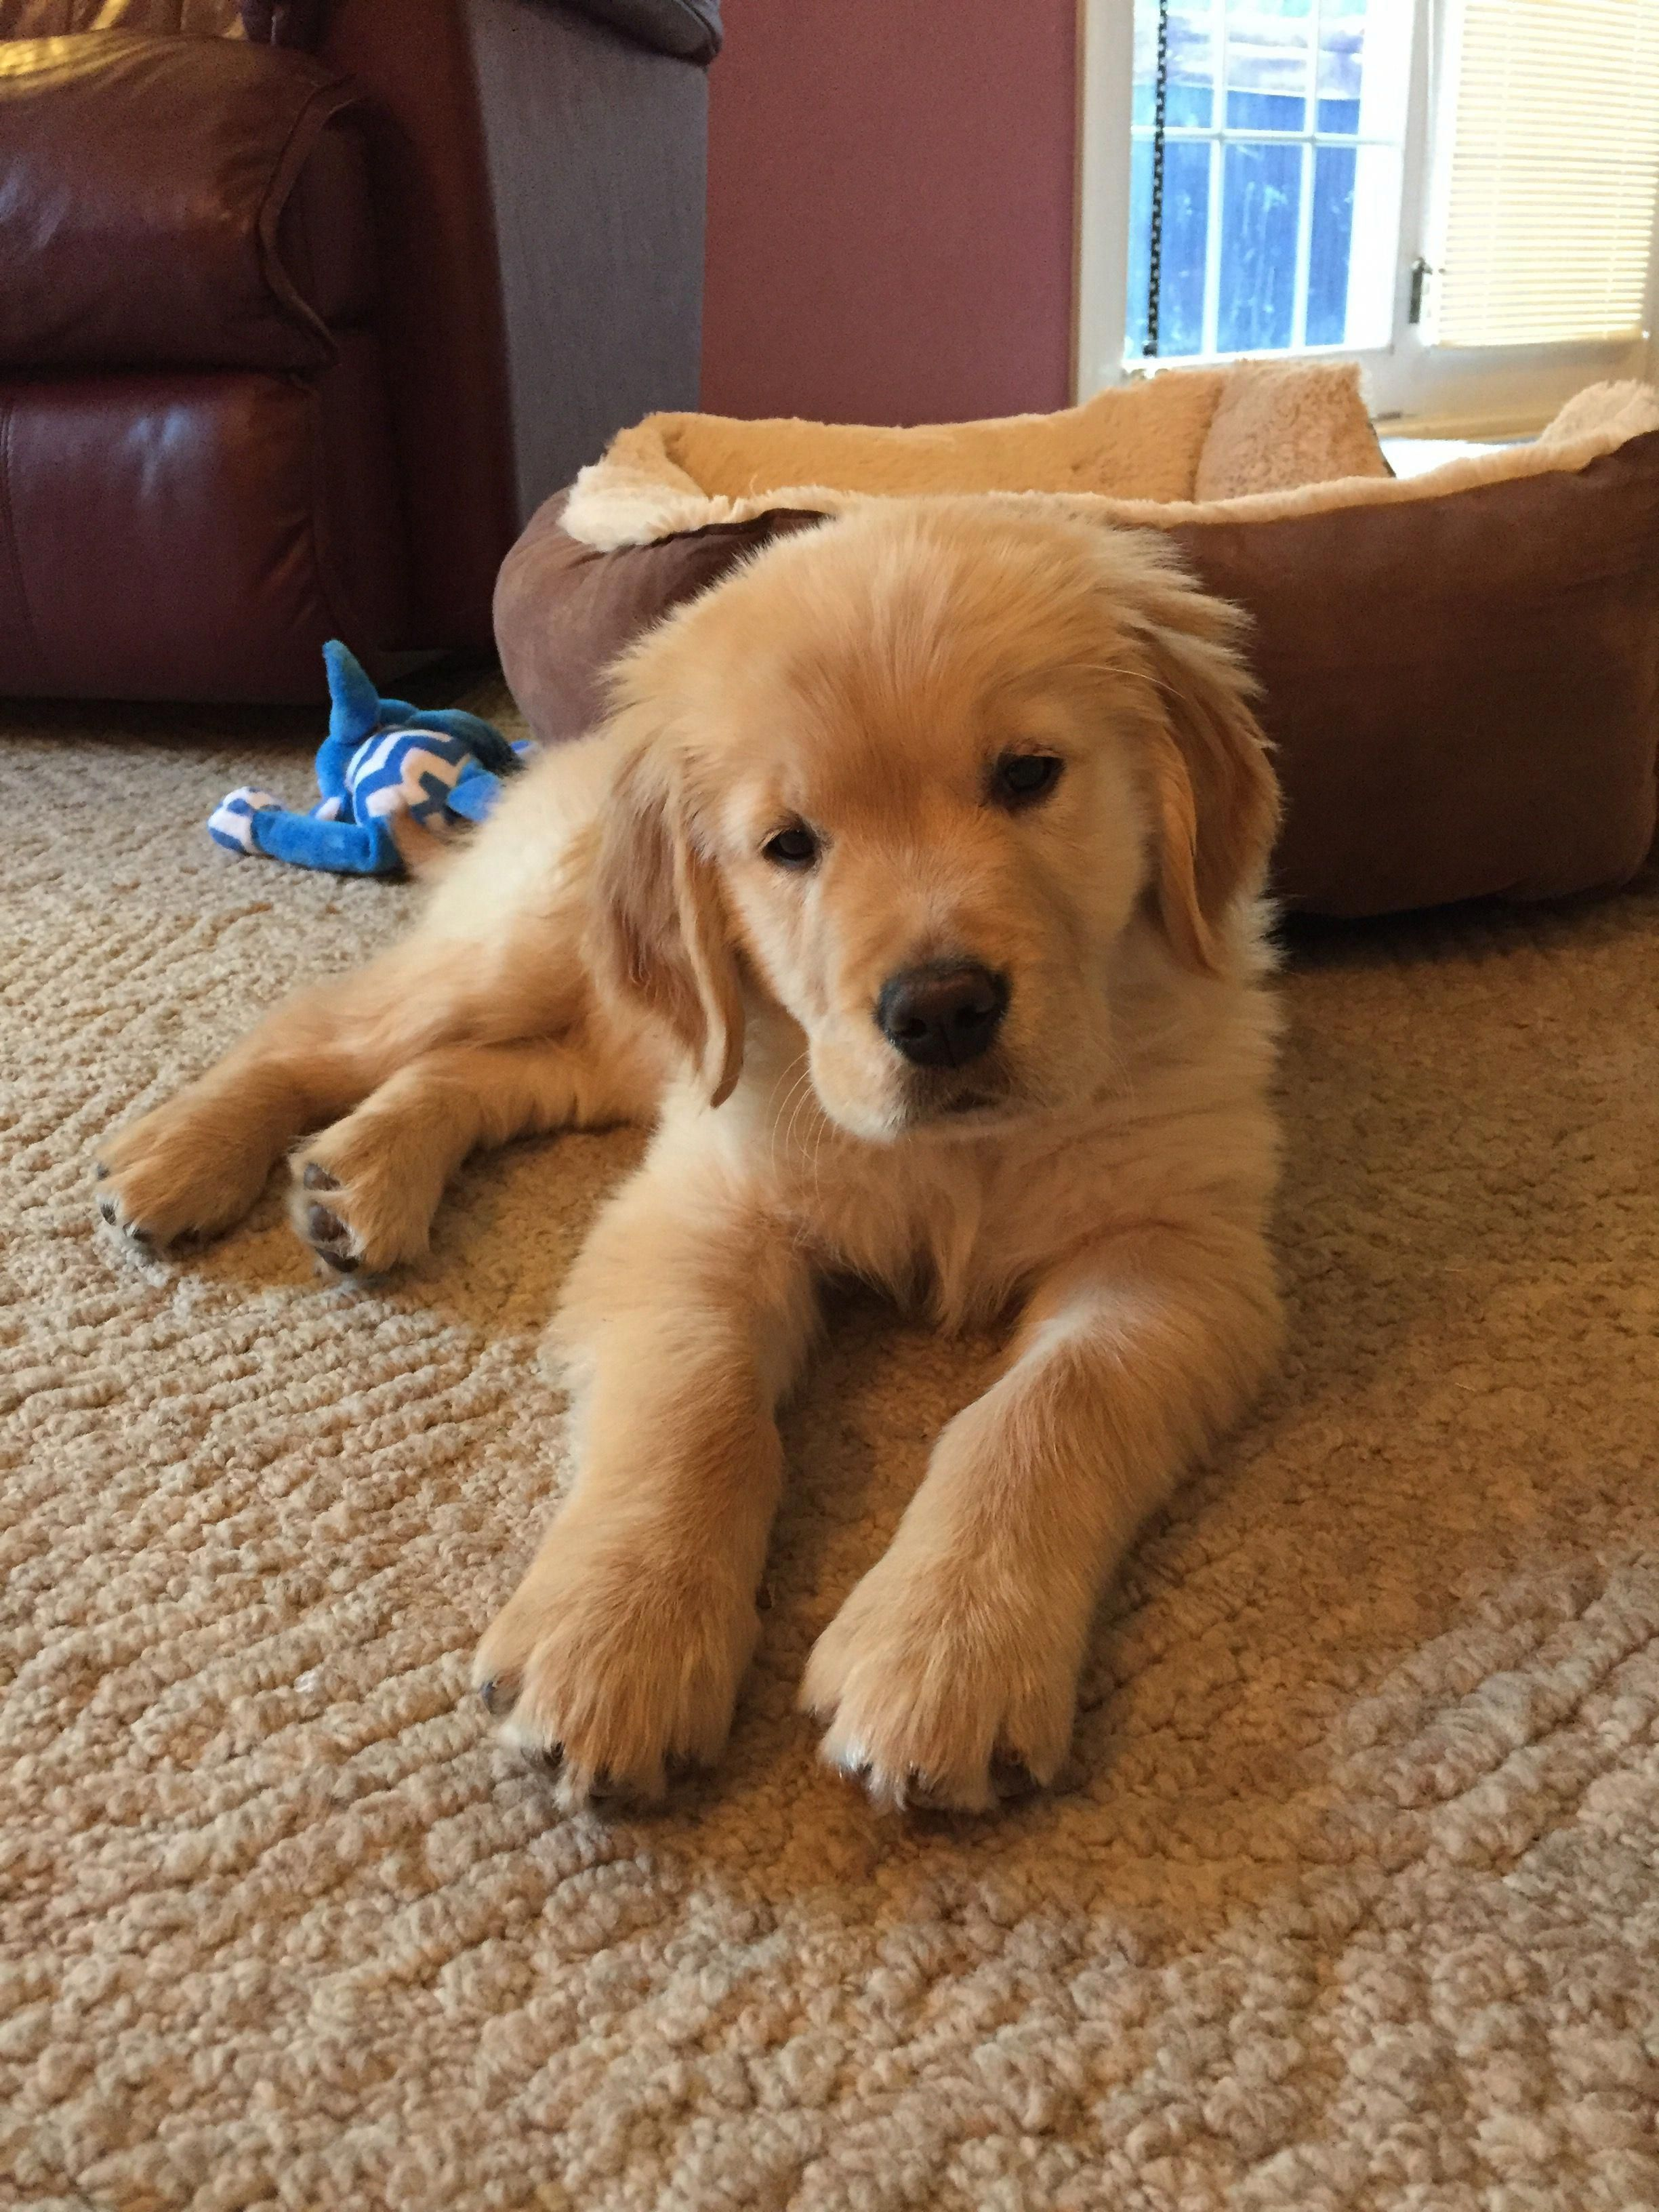 All The Things I Adore About The Devoted Golden Retriever Pup